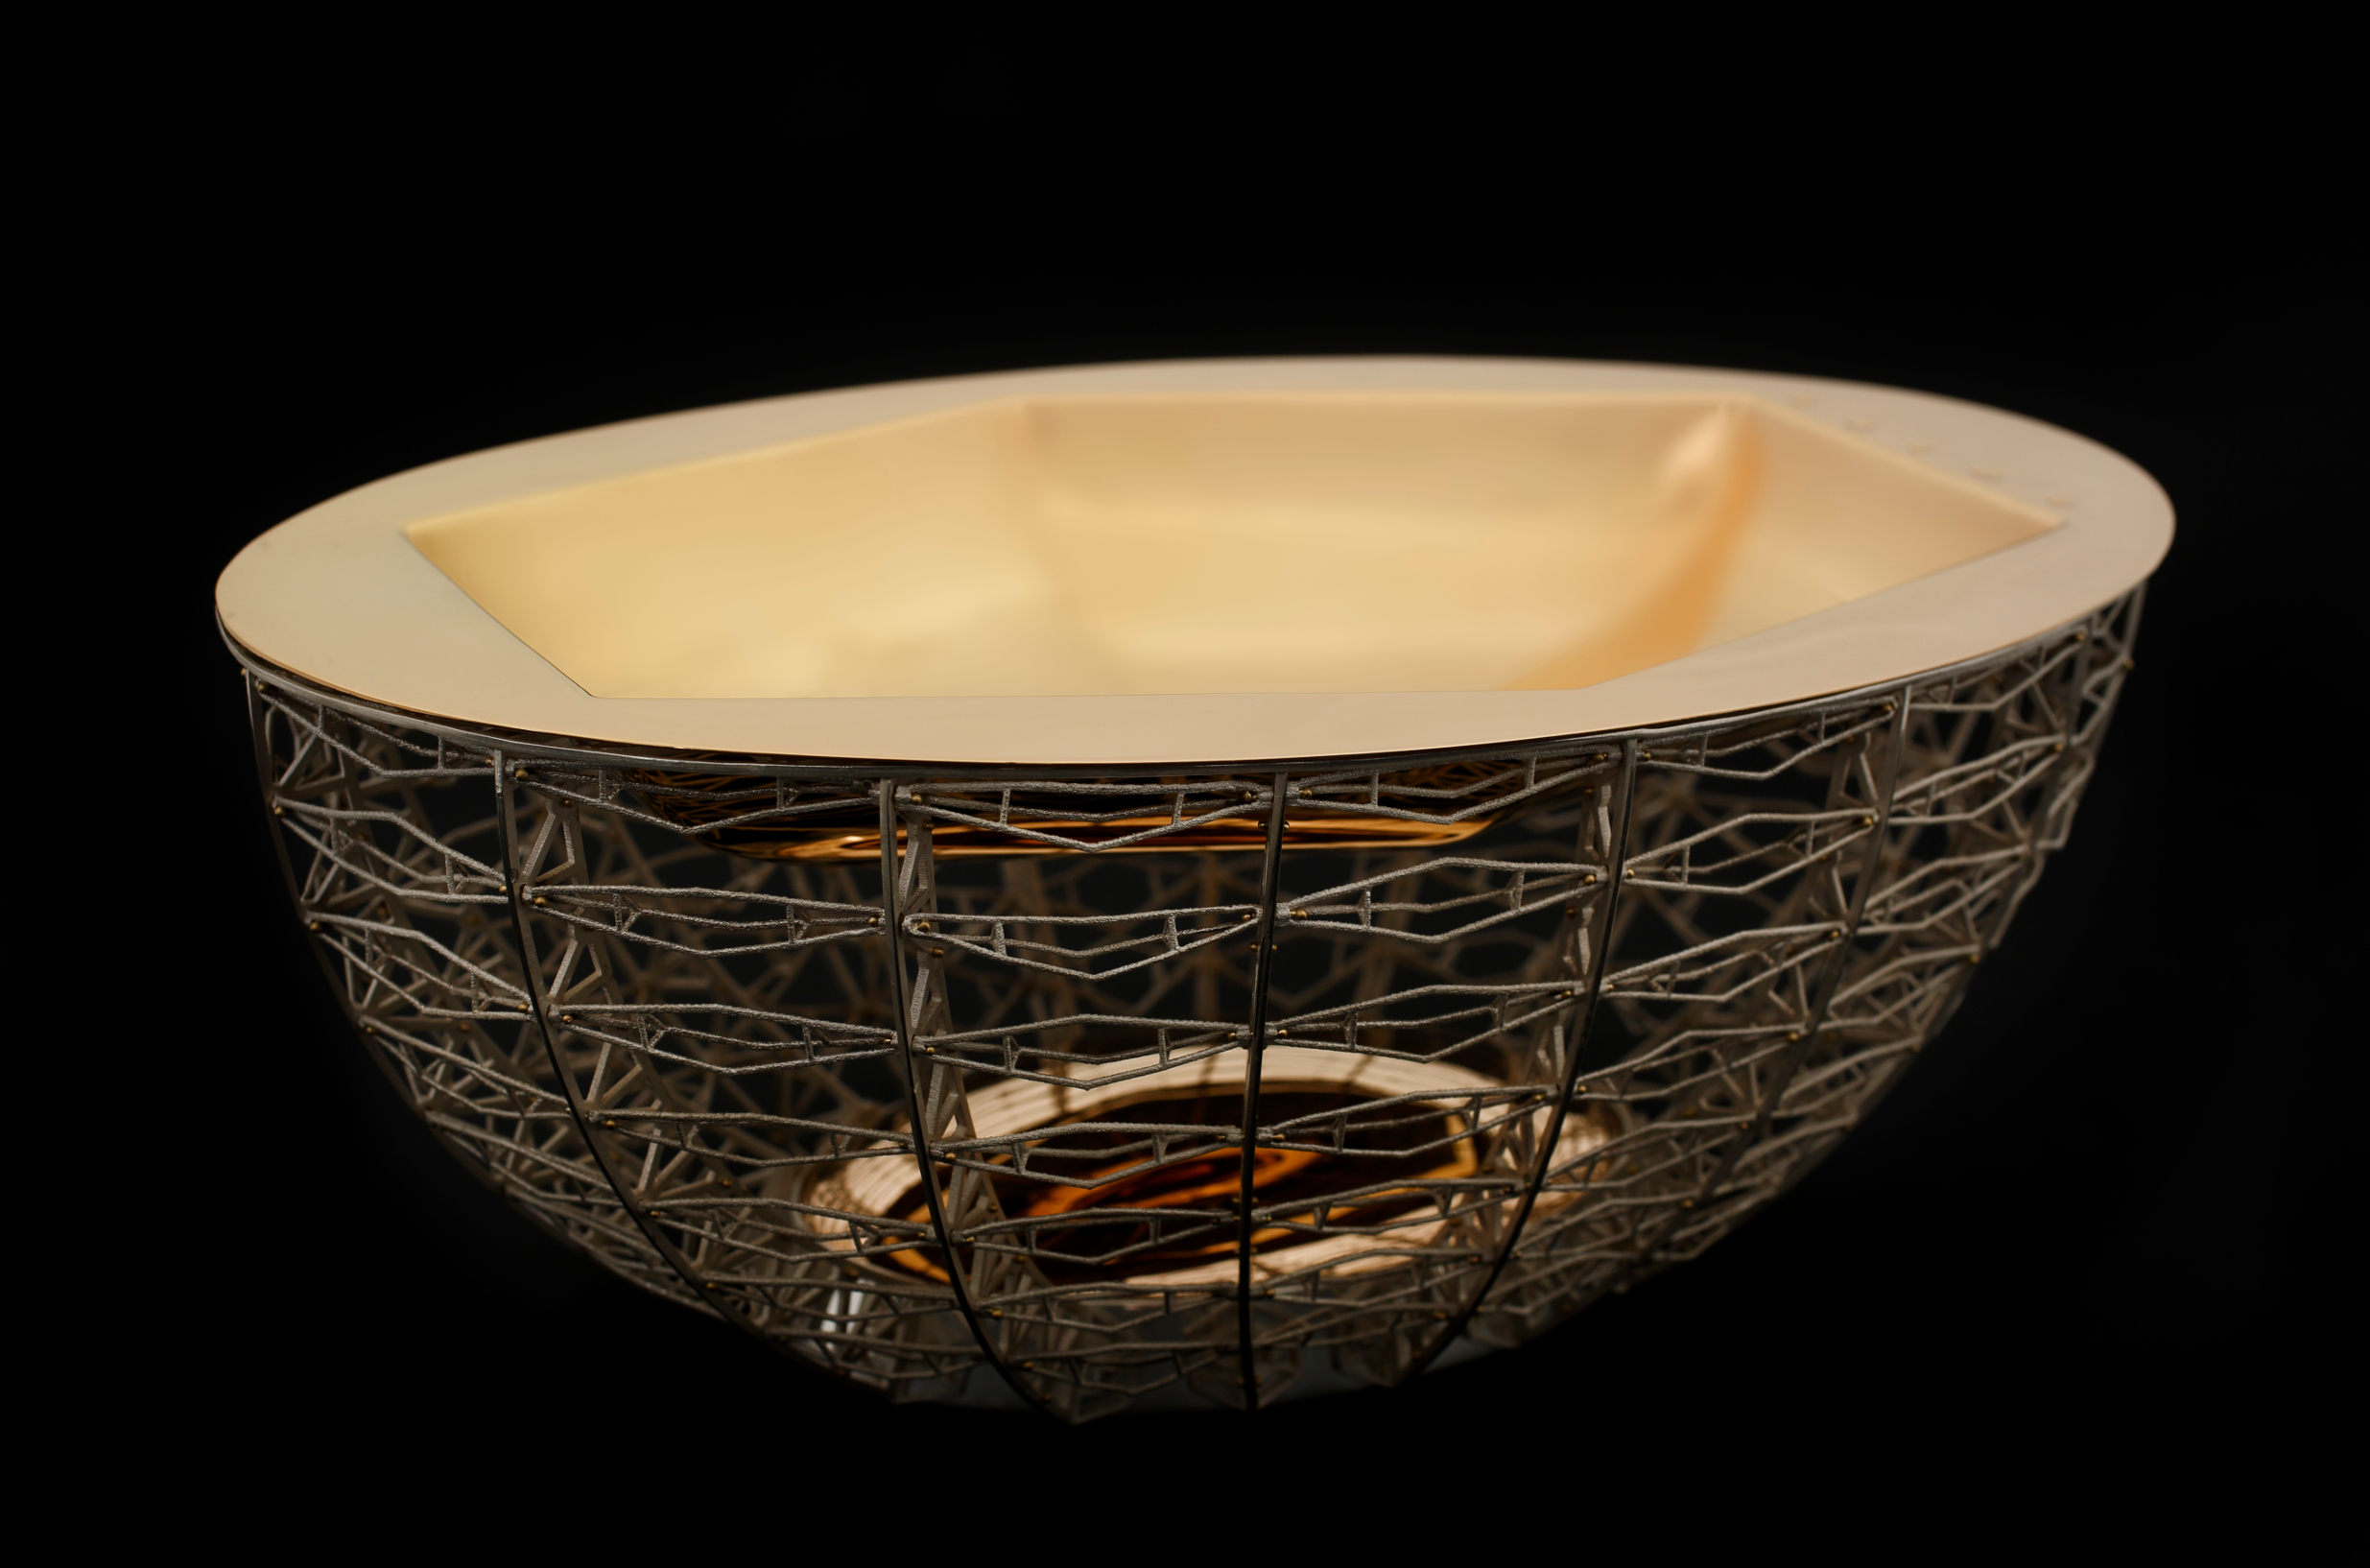 Infinity Oval Bowl